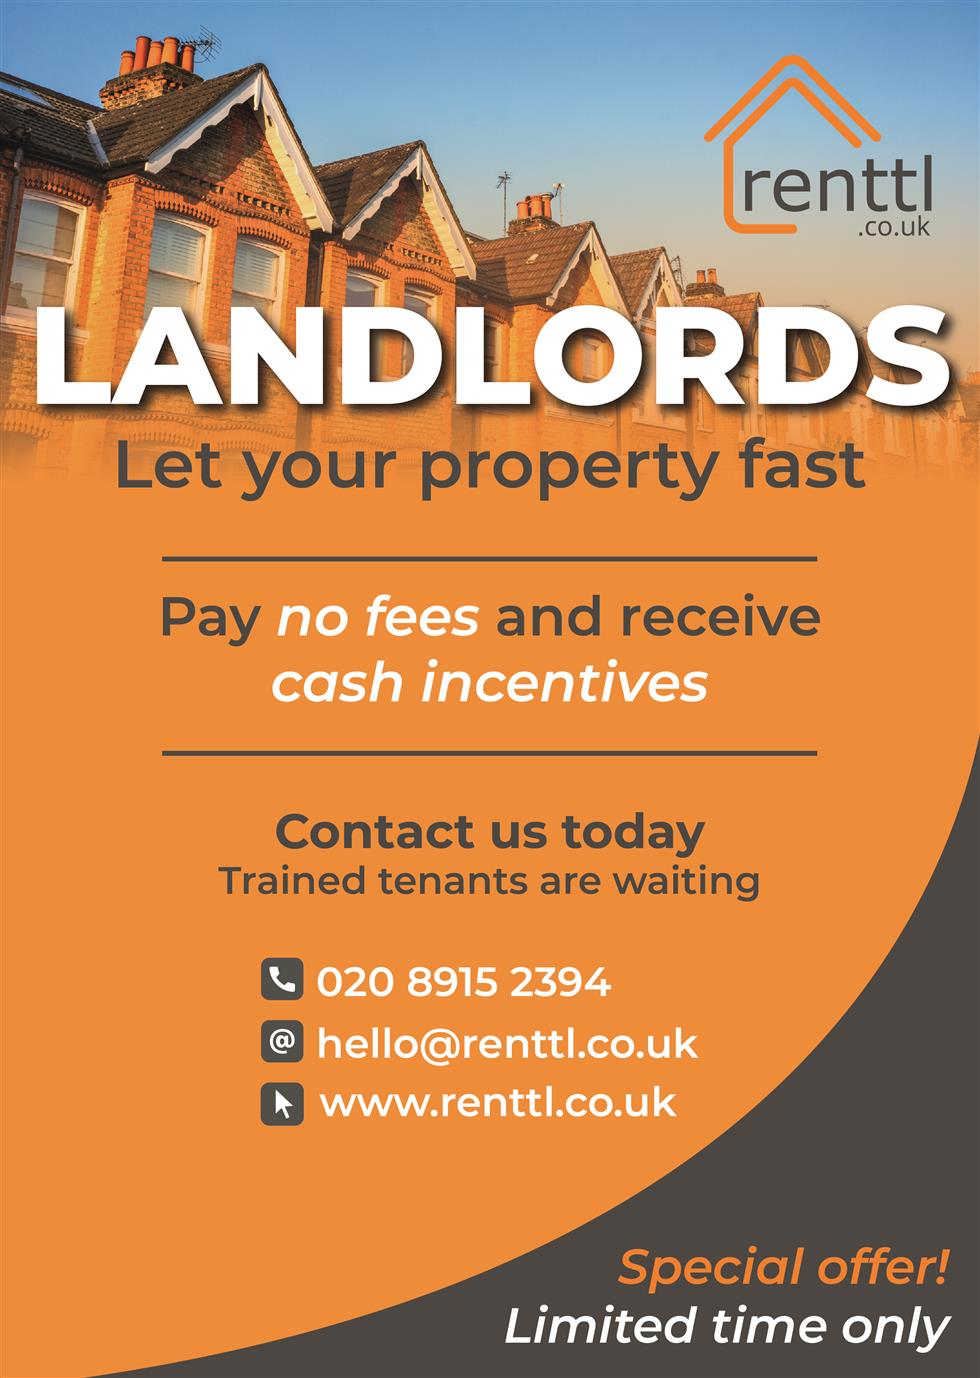 Let Fast ✓ Cash Incentives ✓ No Fees ✓ - renttl.co.uk - perfectly matching tenants to landlords